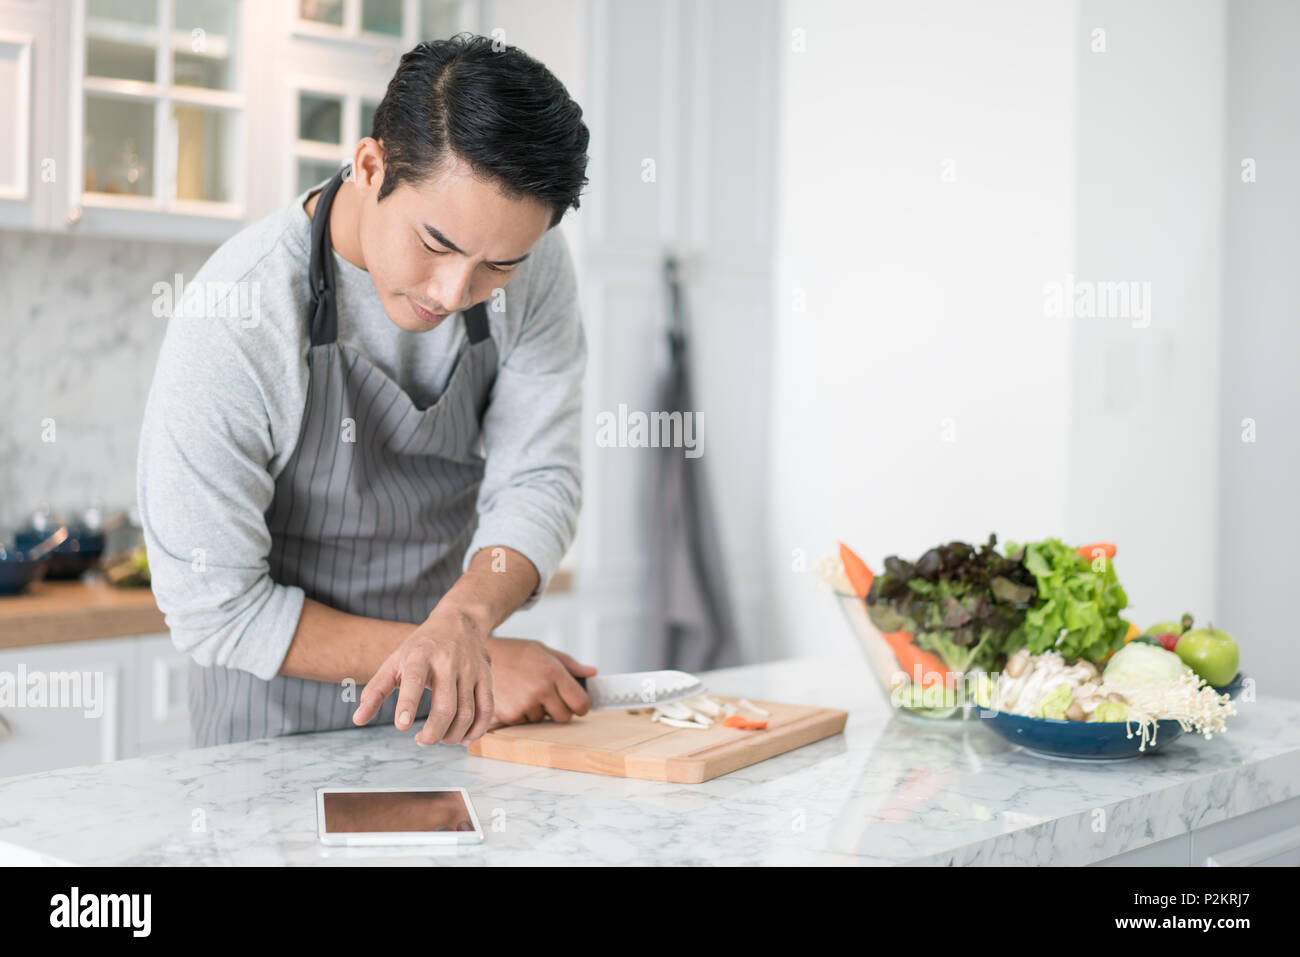 Asian confused man reading his tablet with a pensive thoughtful look while standing in his kitchen while cooking and preparing a meal from a variety o - Stock Image